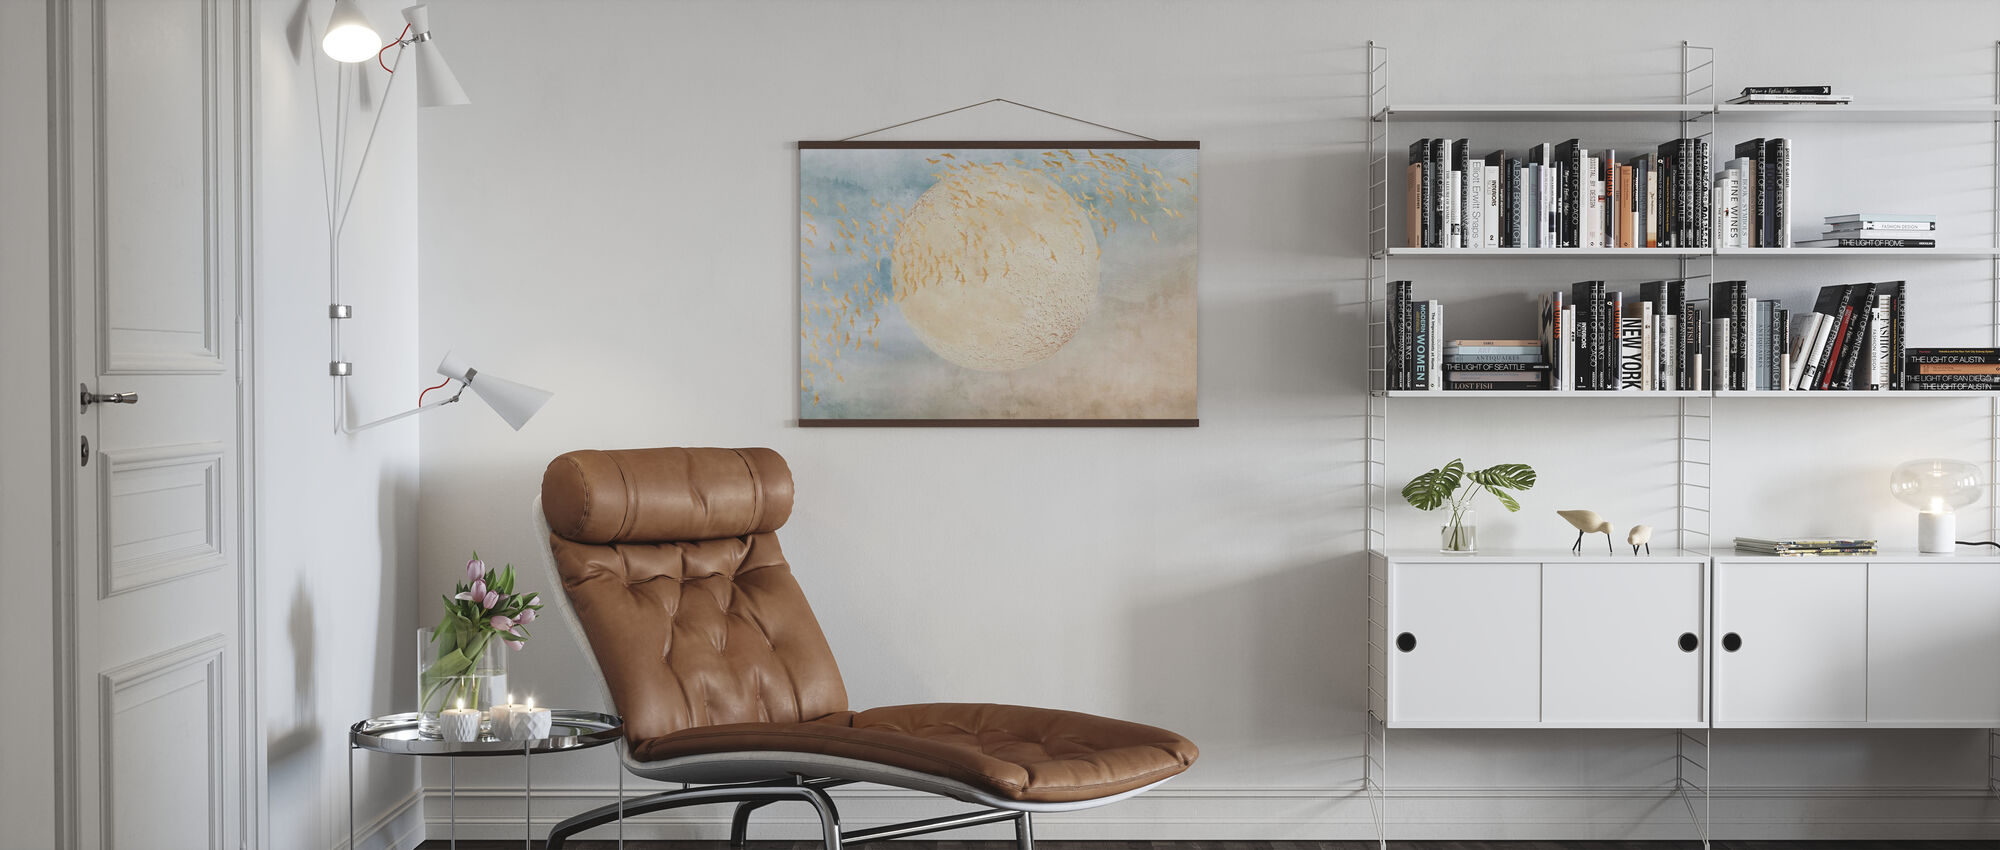 Swallows and Moon - Poster - Living Room